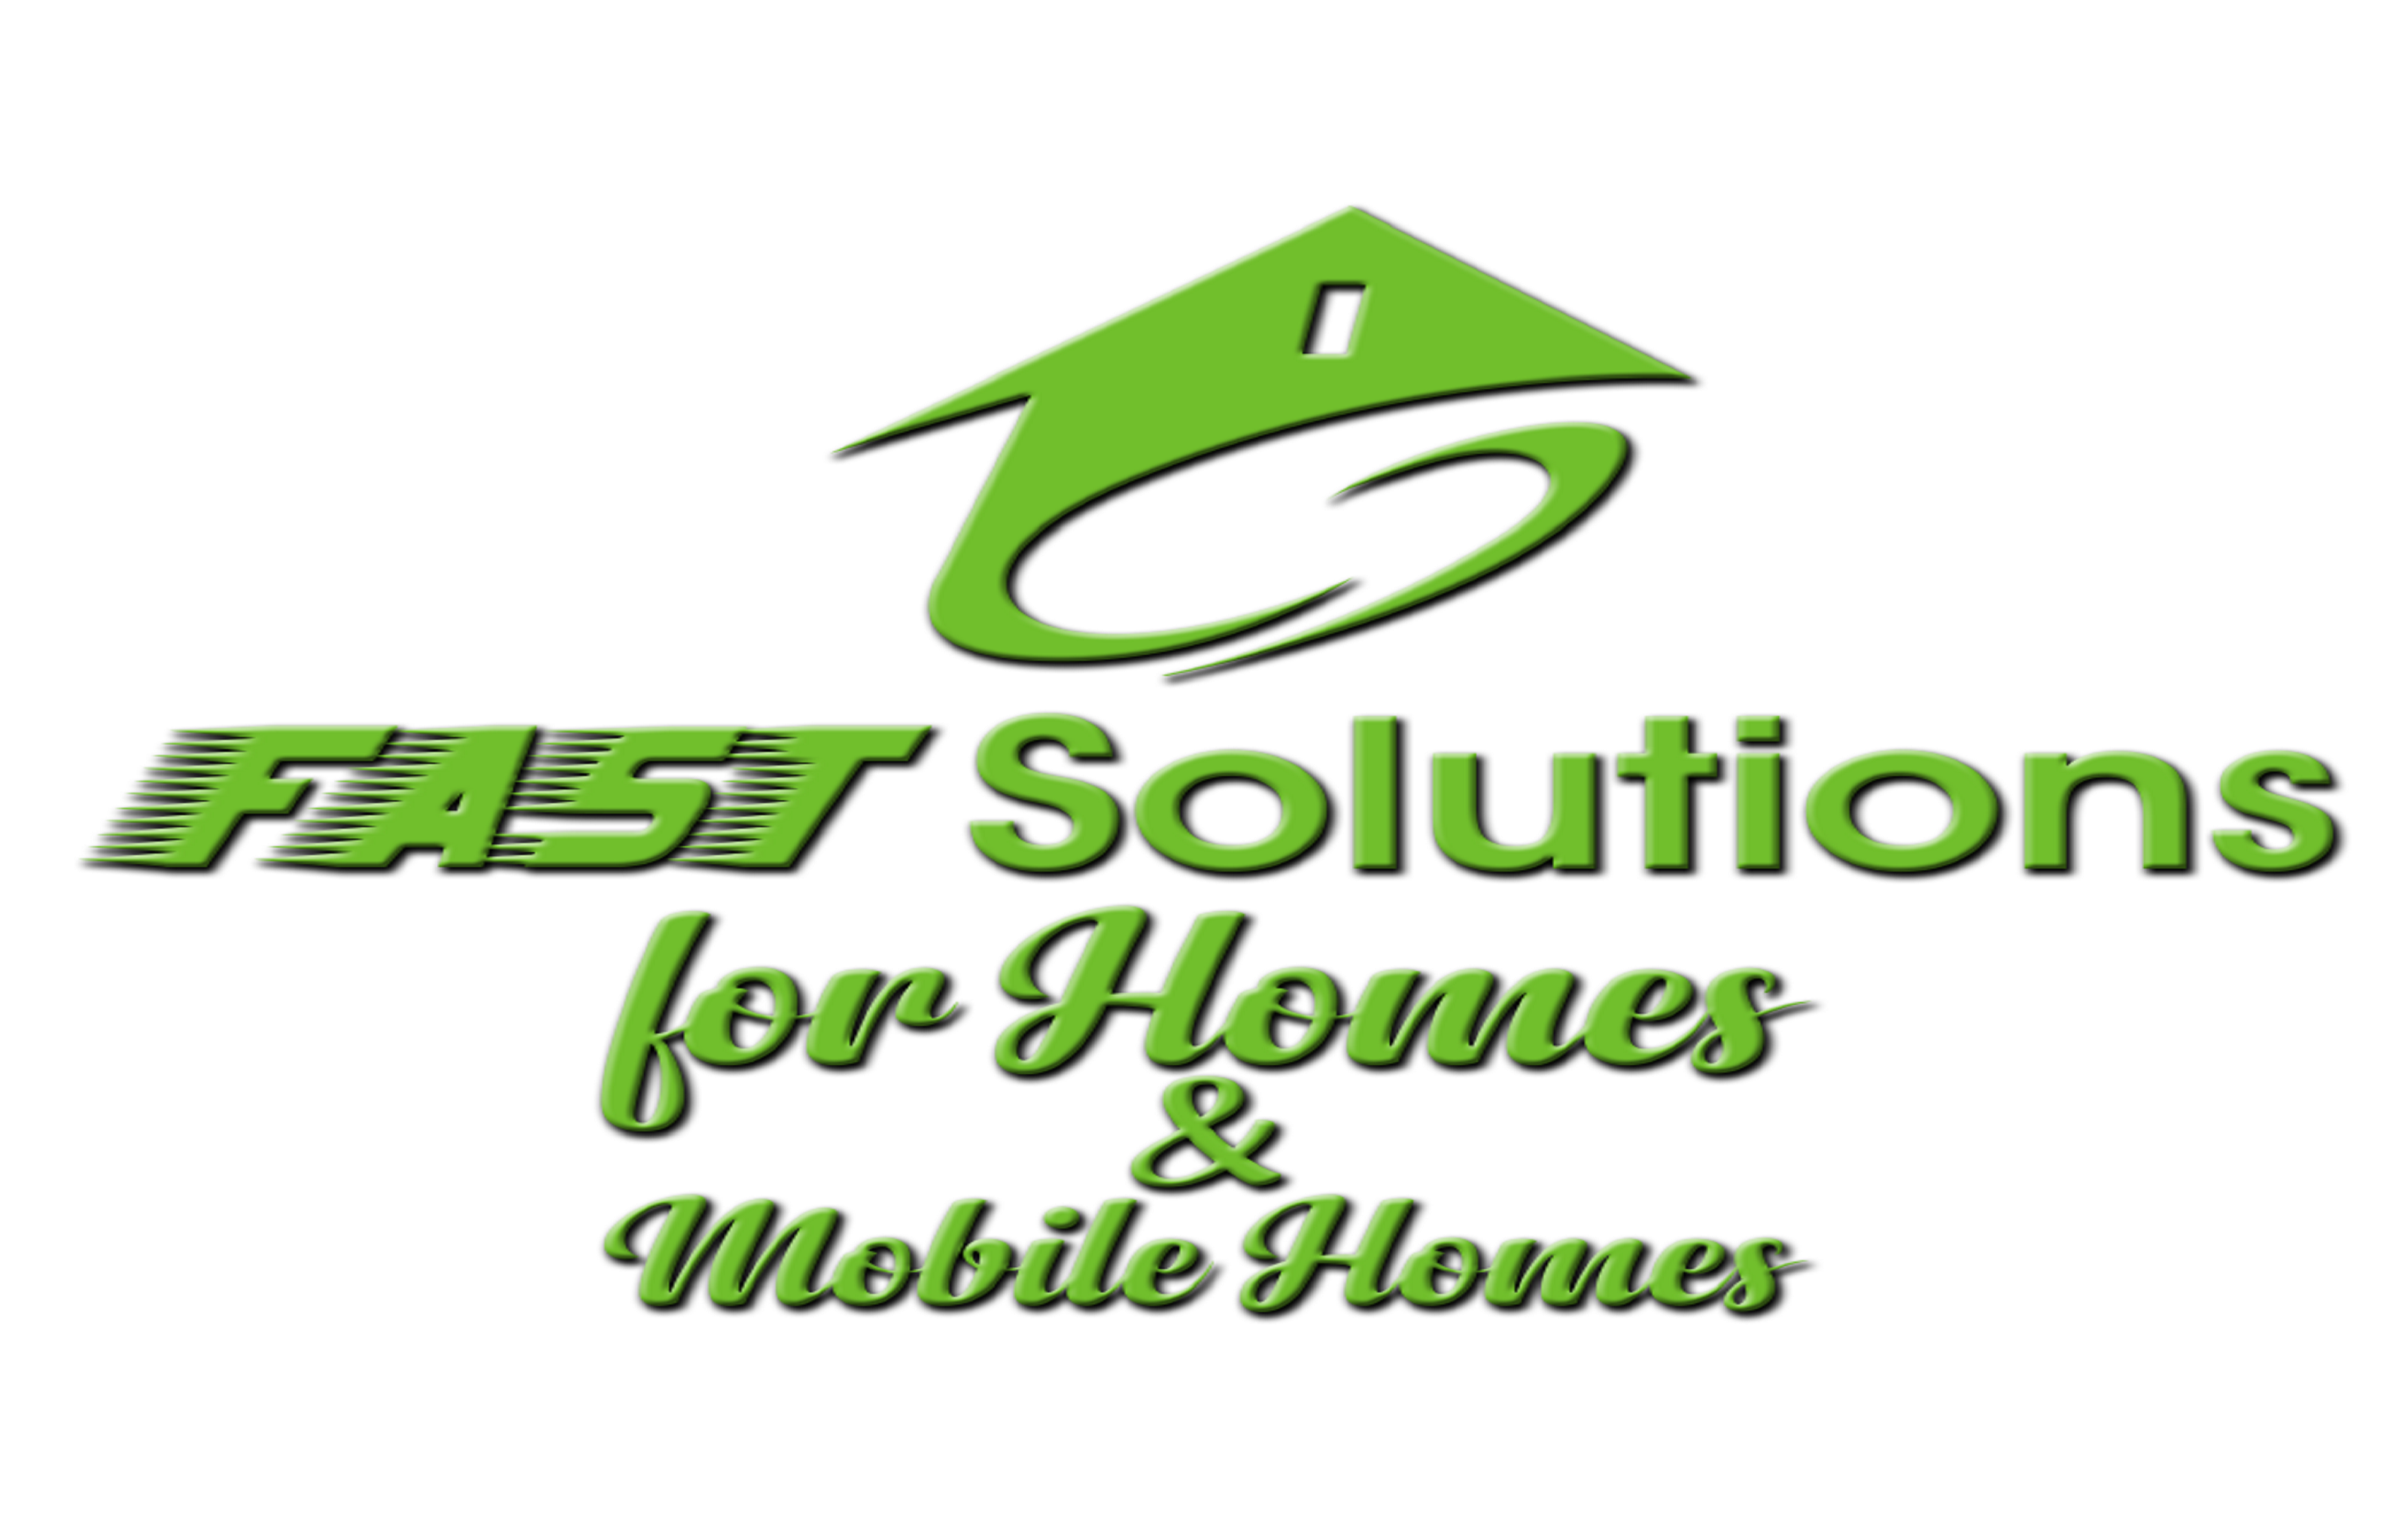 Fast Solutions For Homes